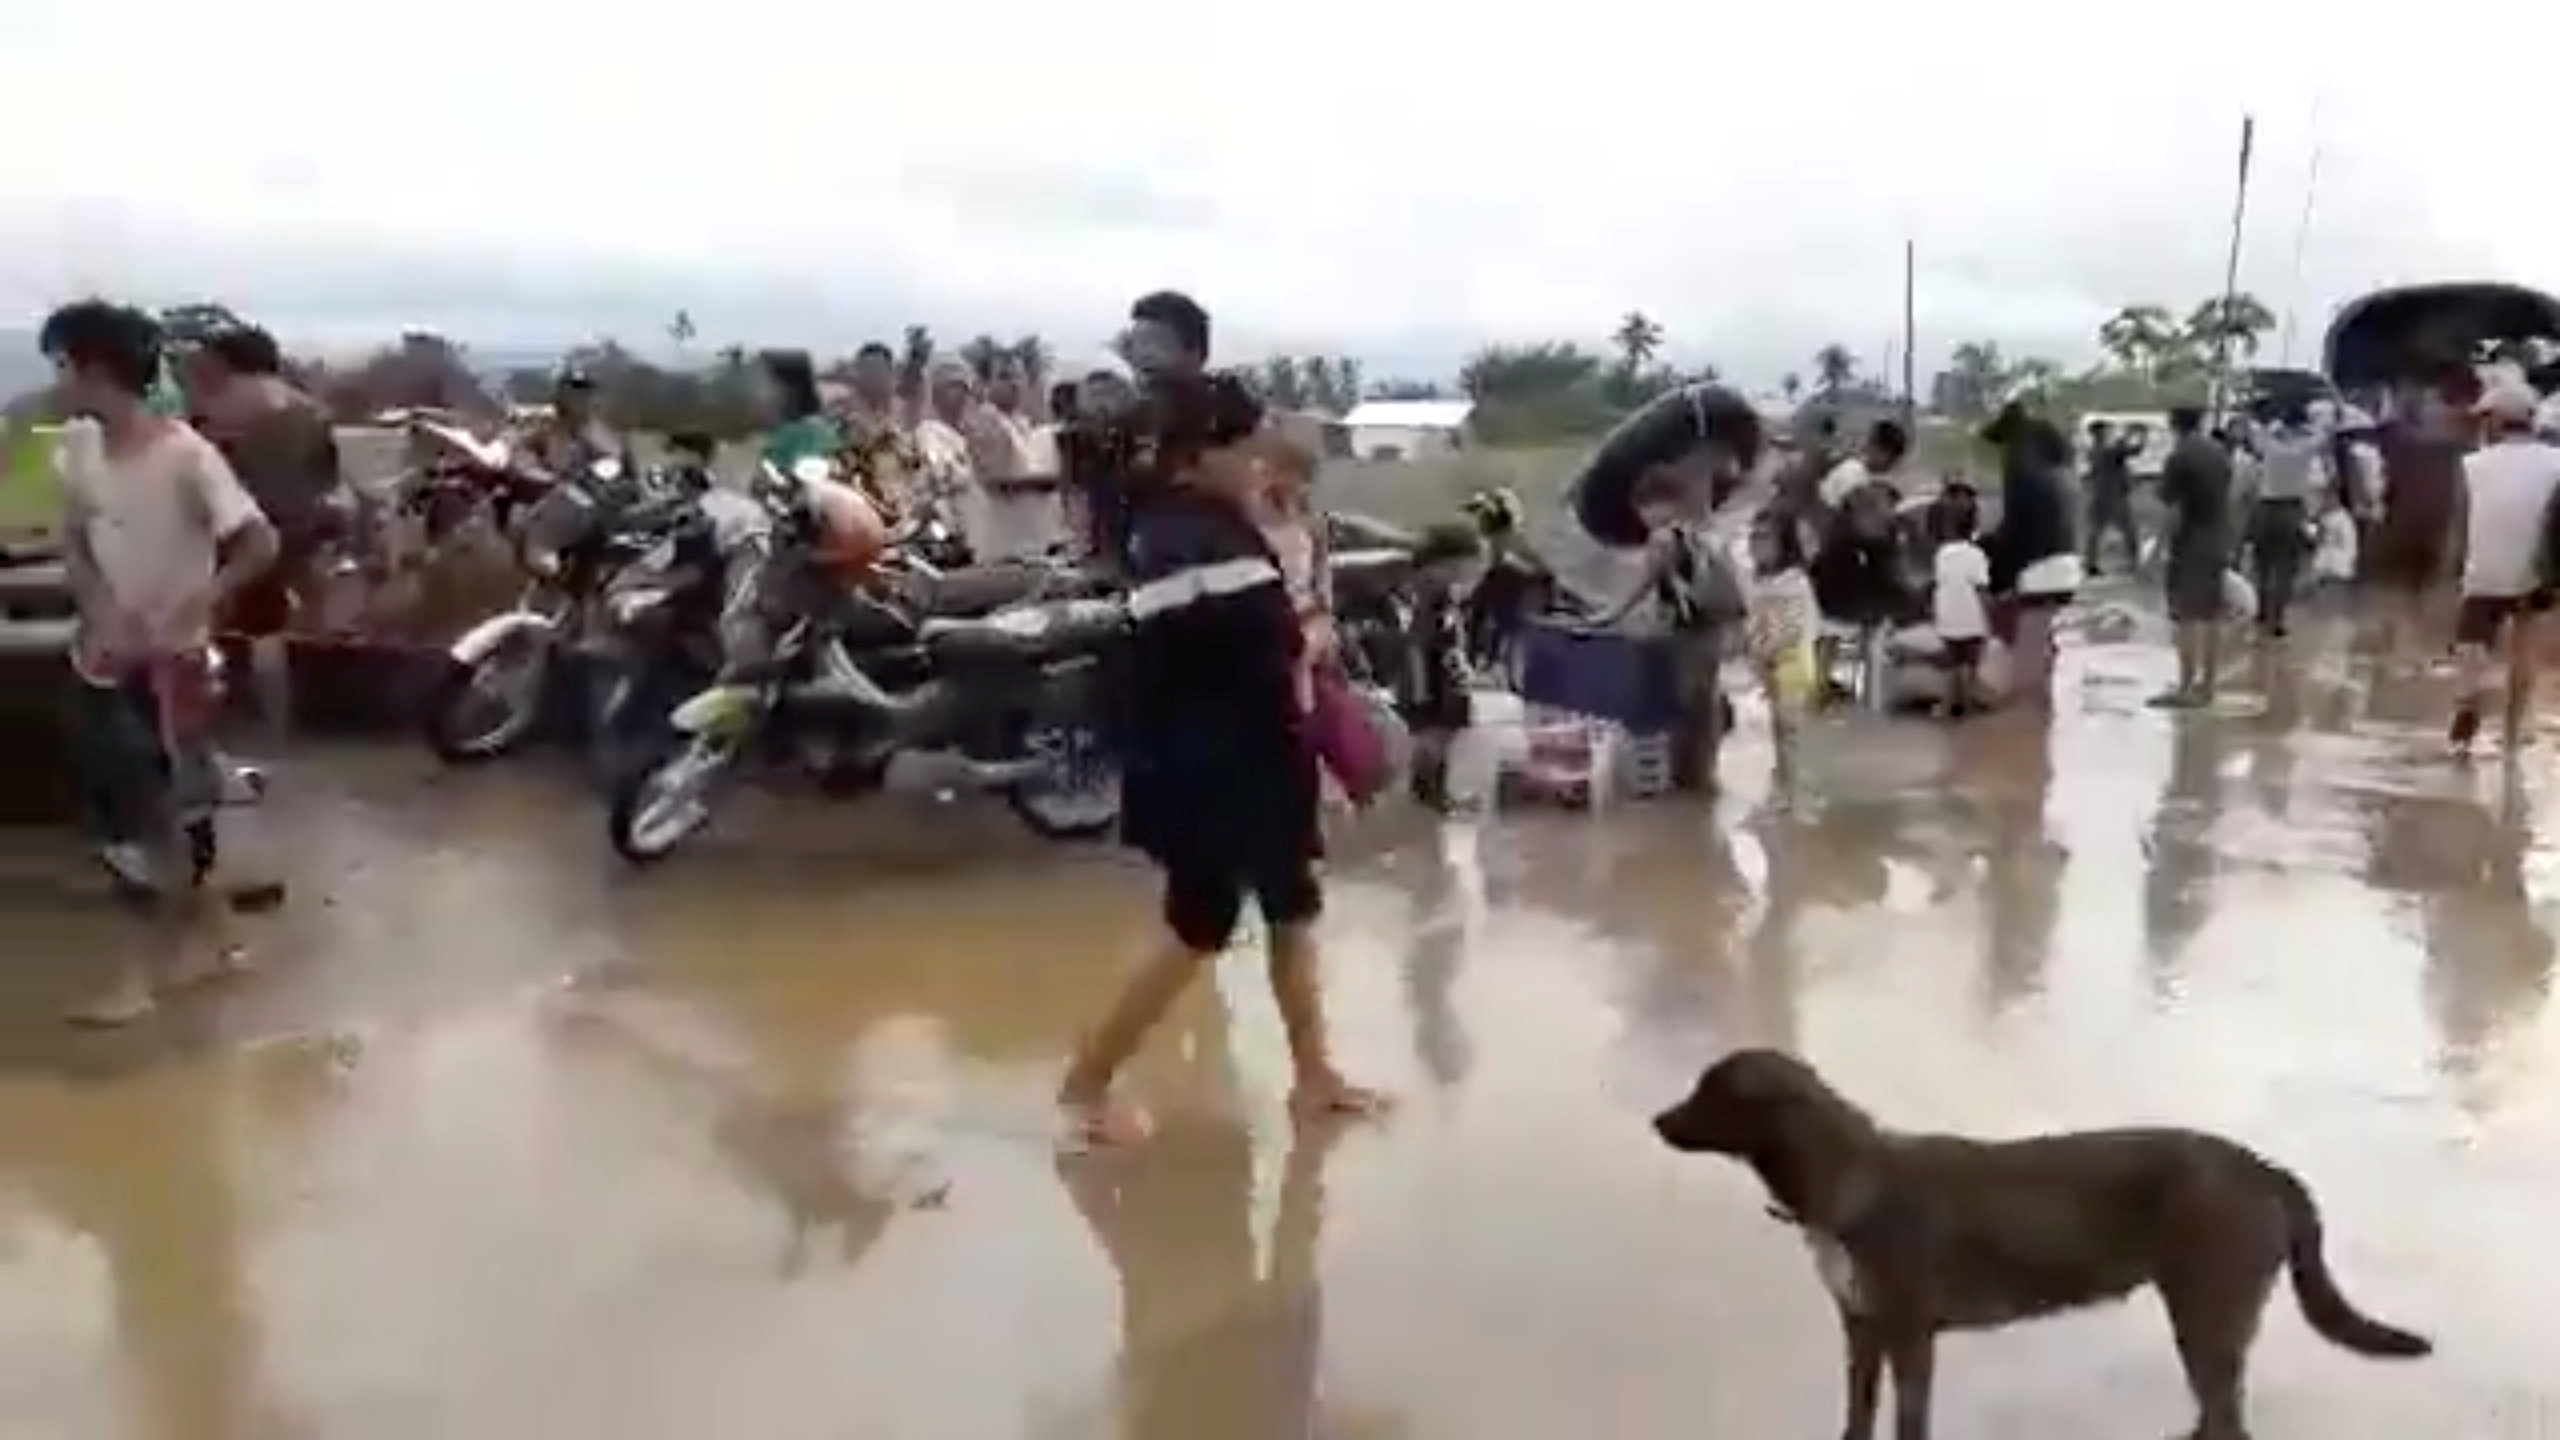 A general view shows search, retrieval, and relief operations ongoing at the flooded areas at Tzu Chi Village in Barangay Liloan, Phillipines, December 17, 2017 in this picture obtained from social media. ORMOC CITY POLICE OFFICE/via REUTERS